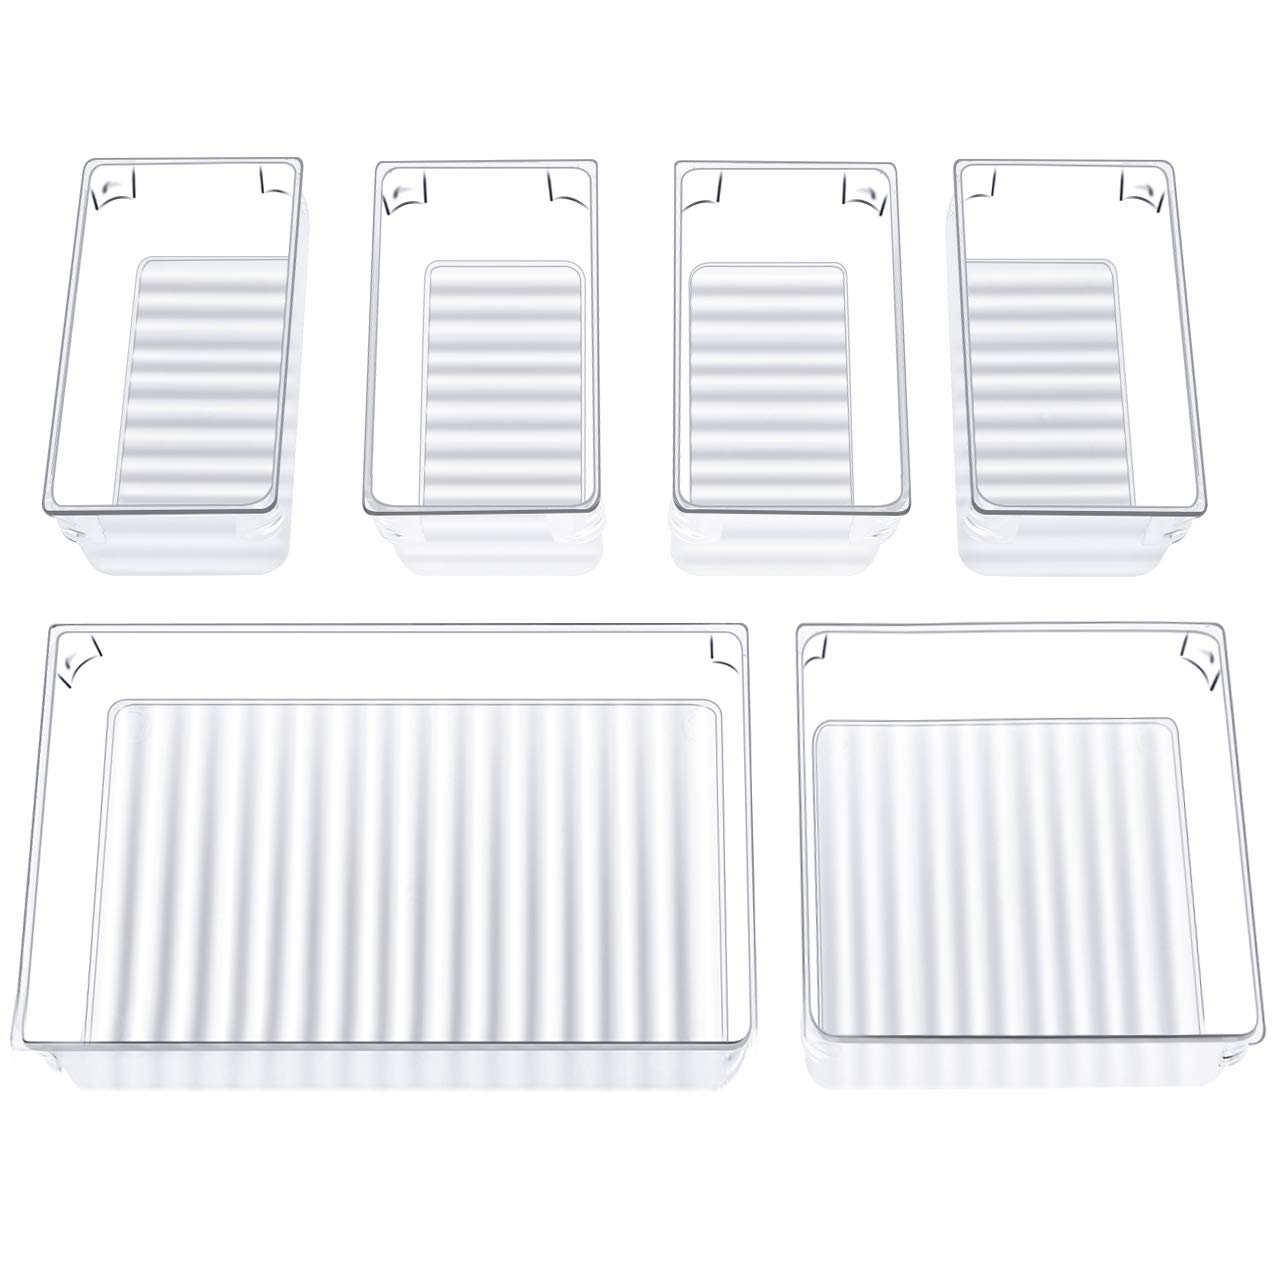 InnoGear Set of 6 Desk Drawer Organiser Trays with 3-Size Clear Plastic Storage Boxes Divider Make-up Organiser for Kitchen Bedroom Office (Clear)